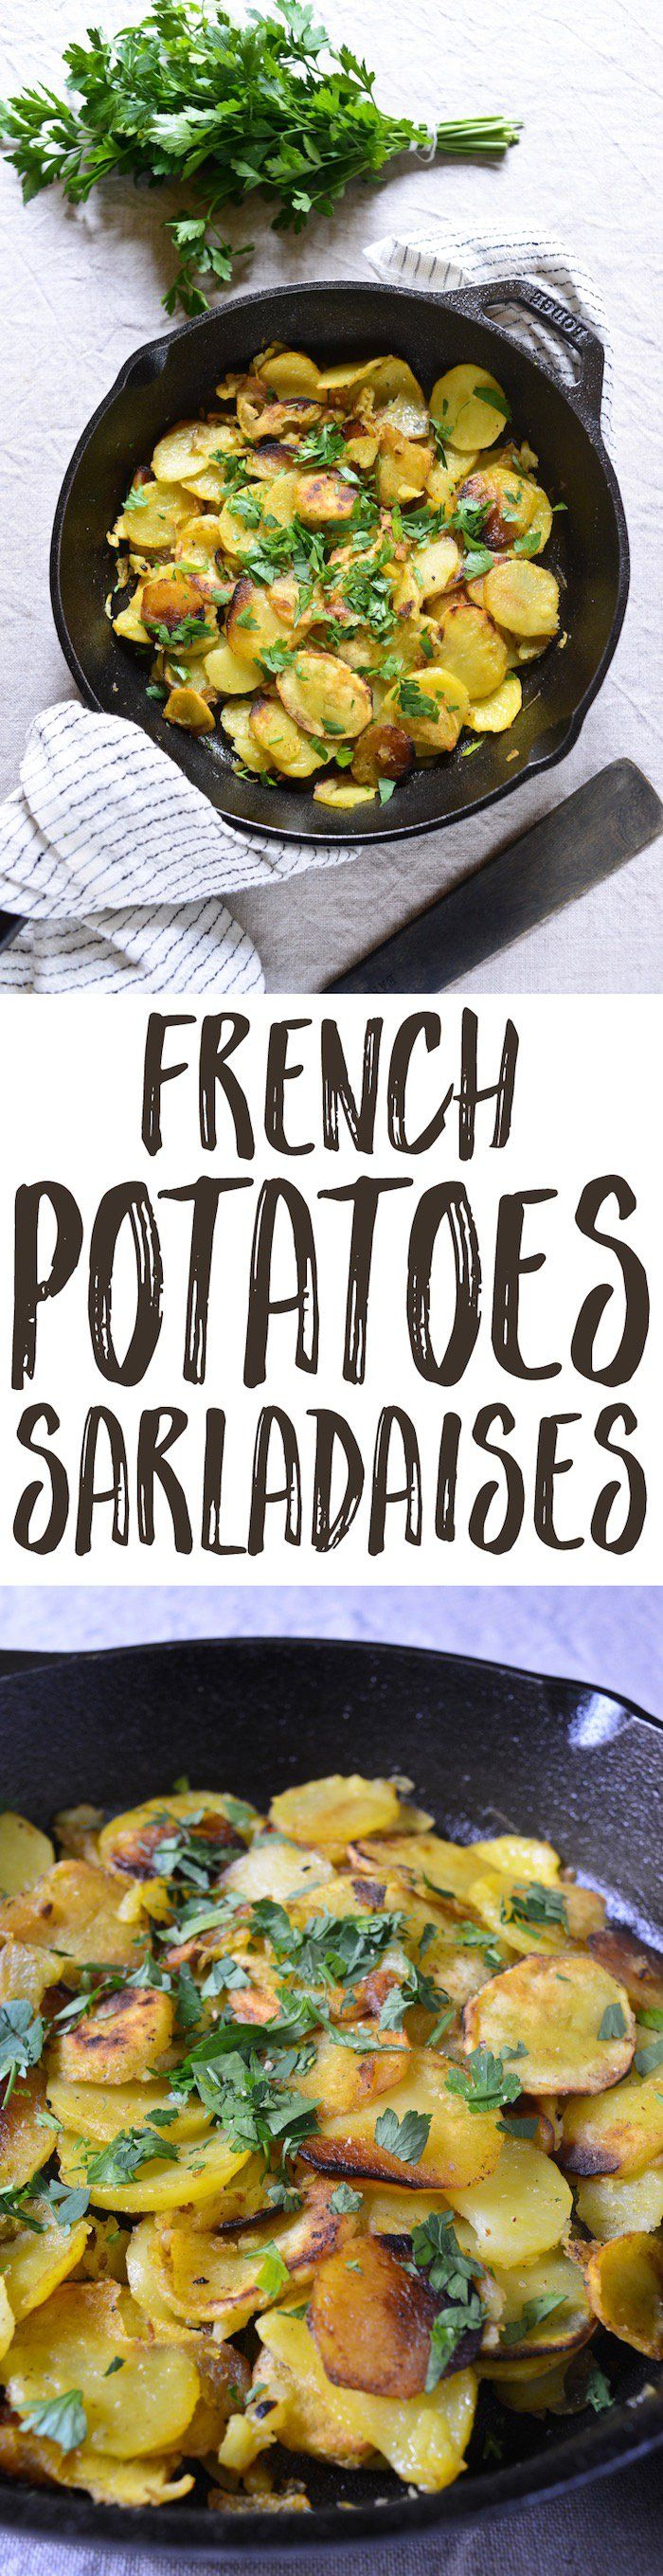 Curious how to make the divine Potatoes Sarladaises they serve with duck confit in the Périgord? Here's the simple fail-safe recipe you've been looking for!